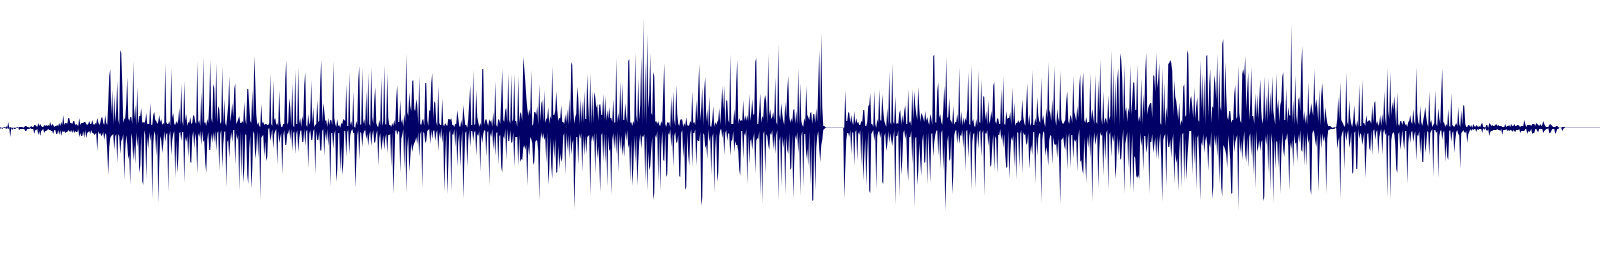 waveform of track #143452